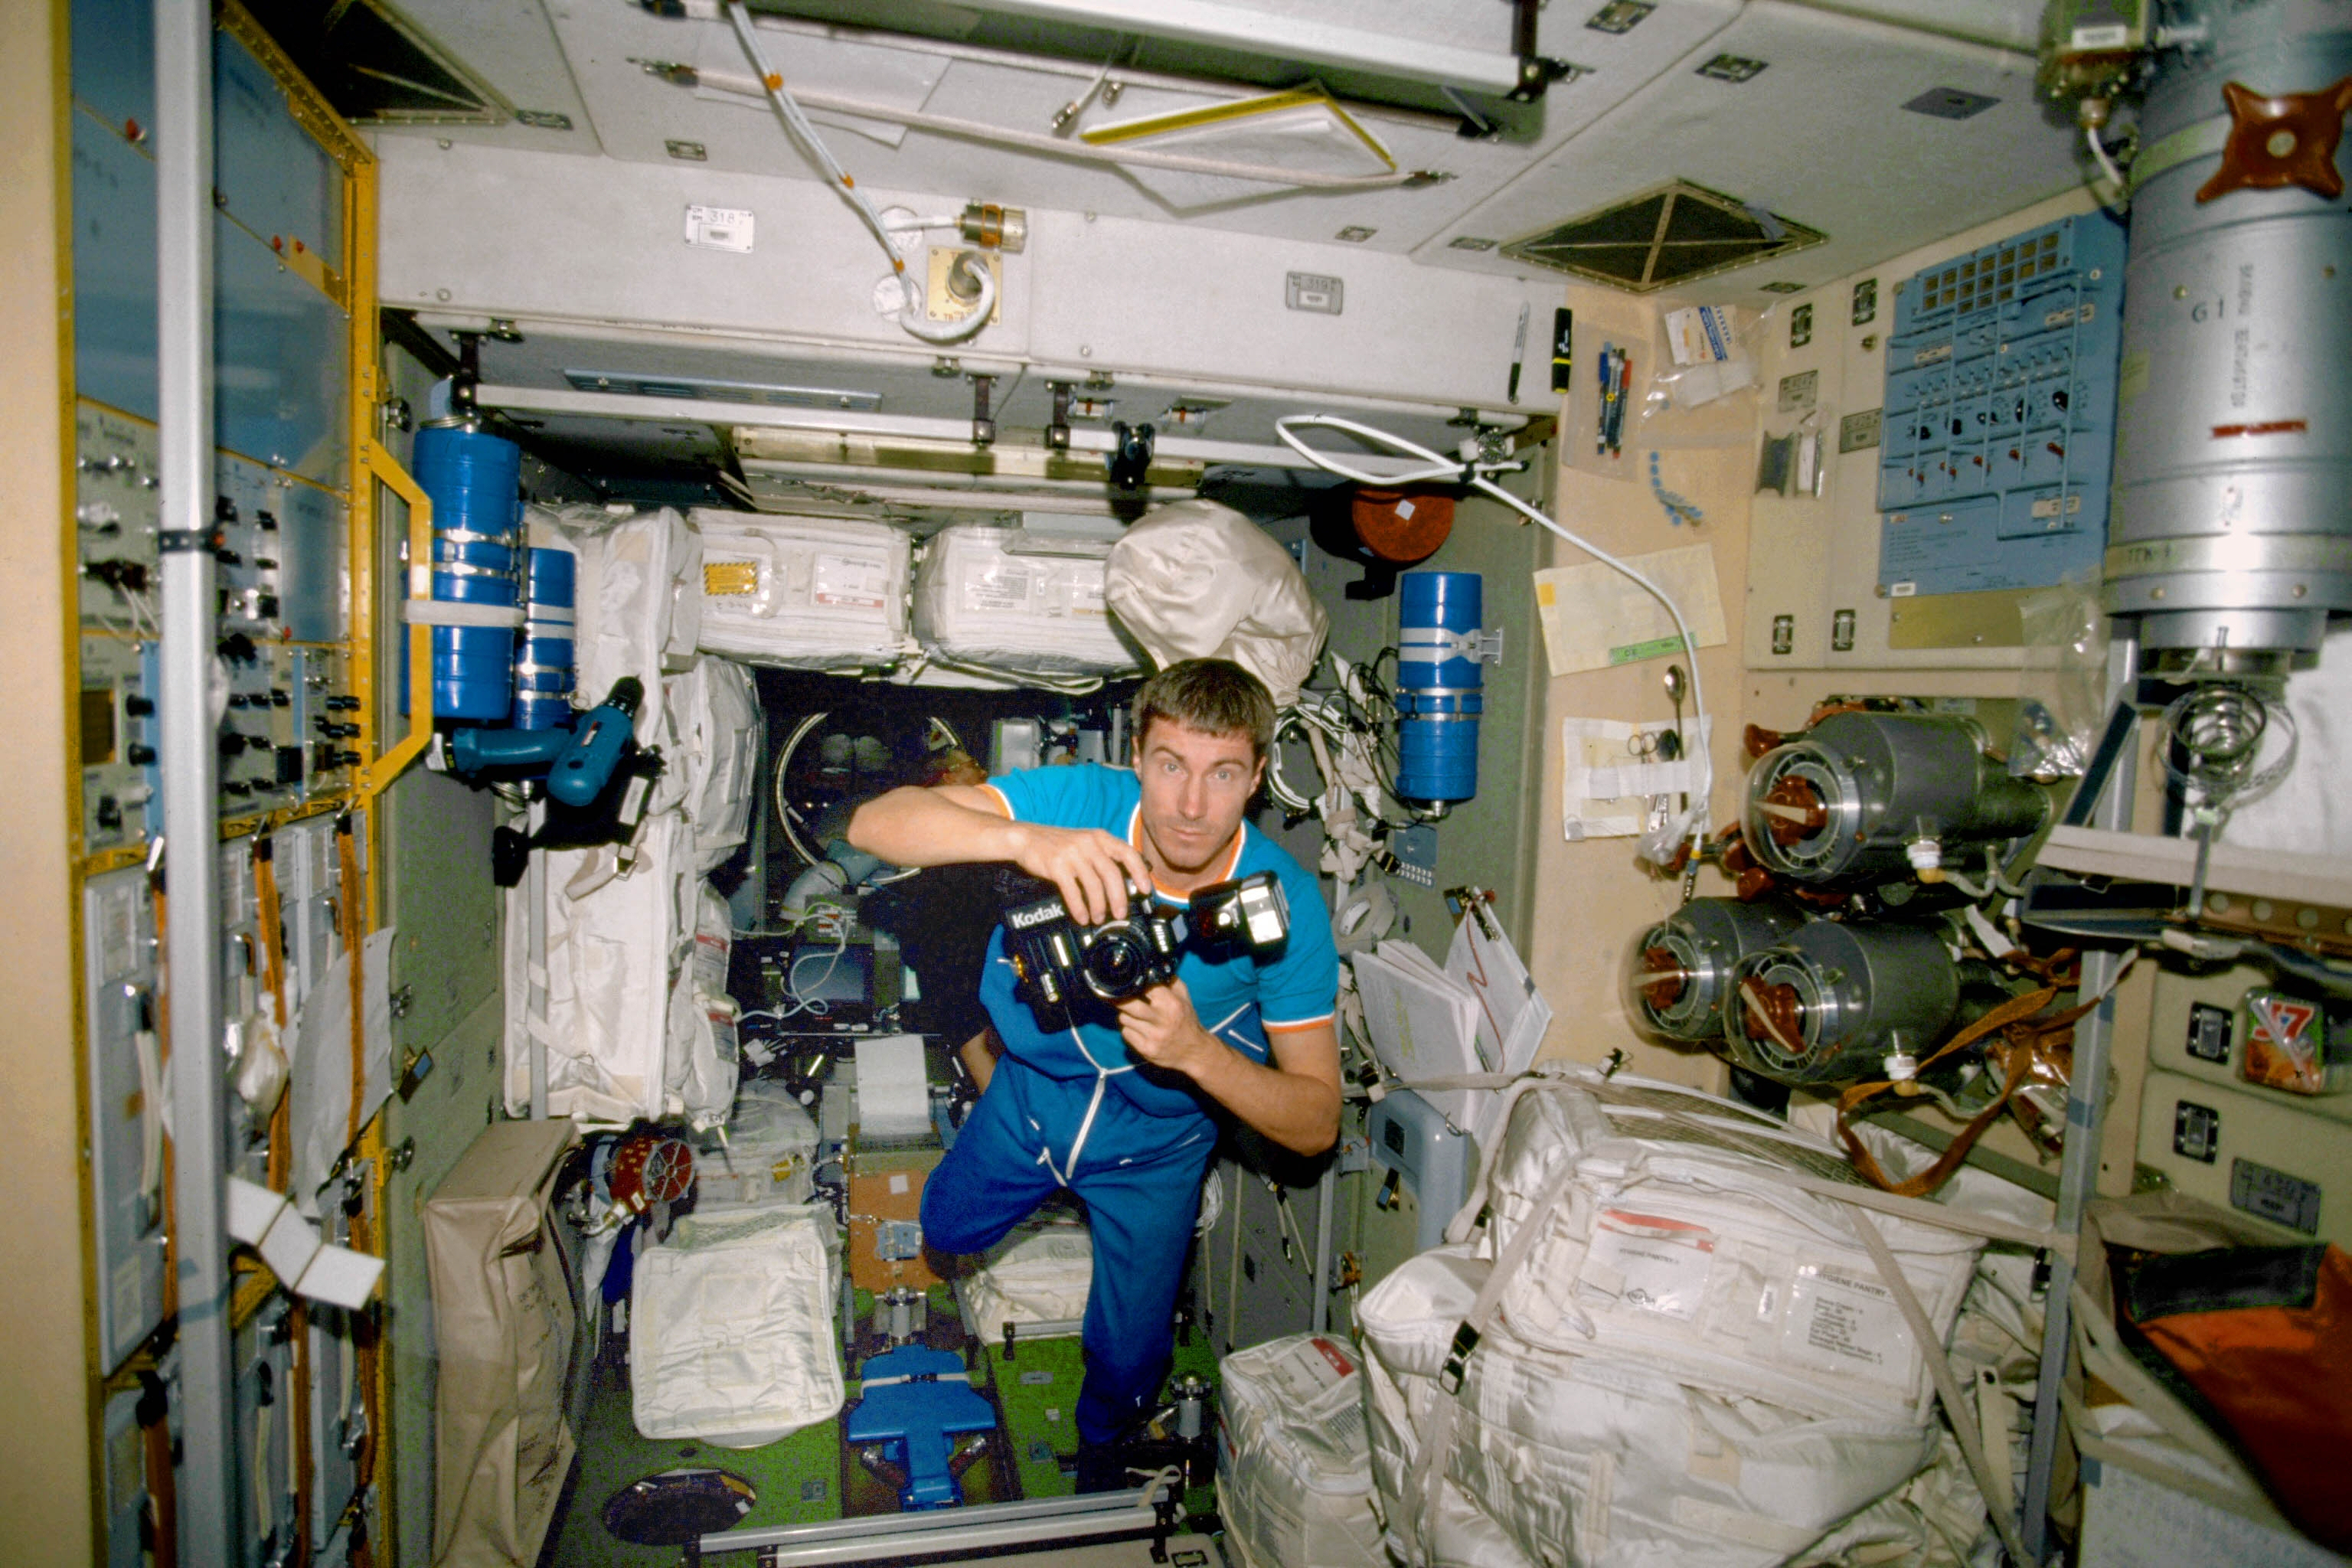 inside space station images - photo #13